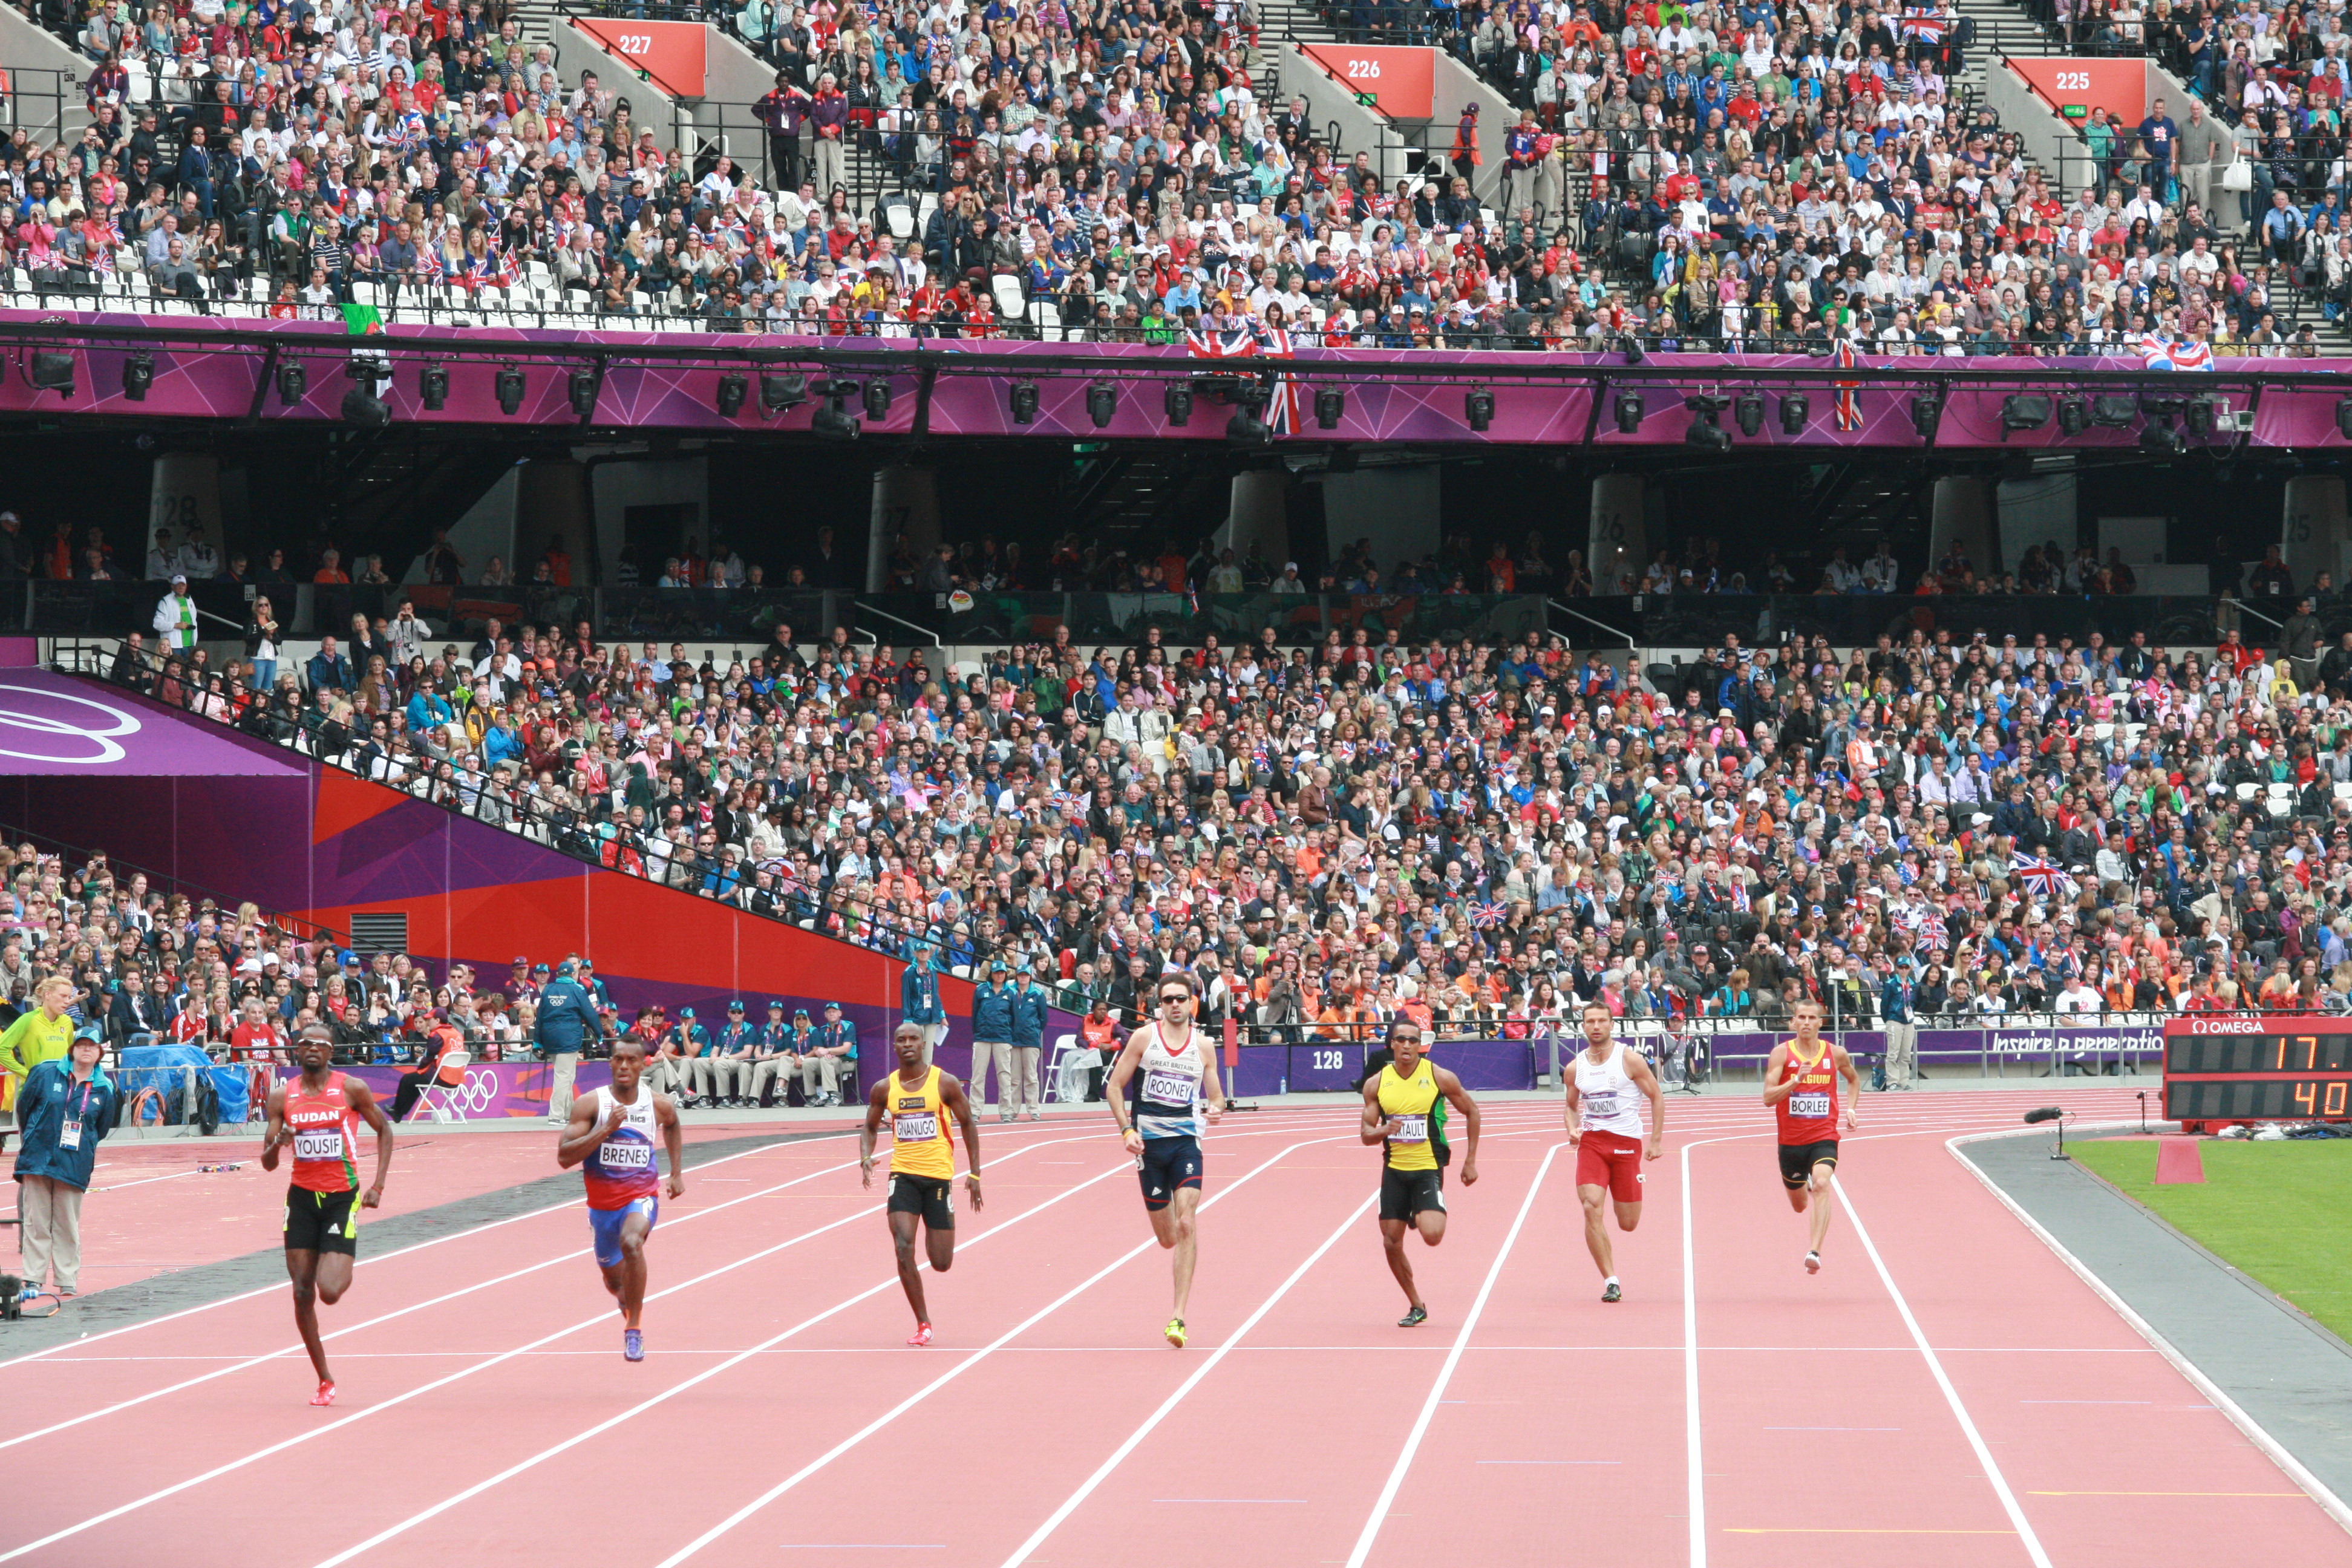 Men's 400m preliminaries - London Olympics 2012